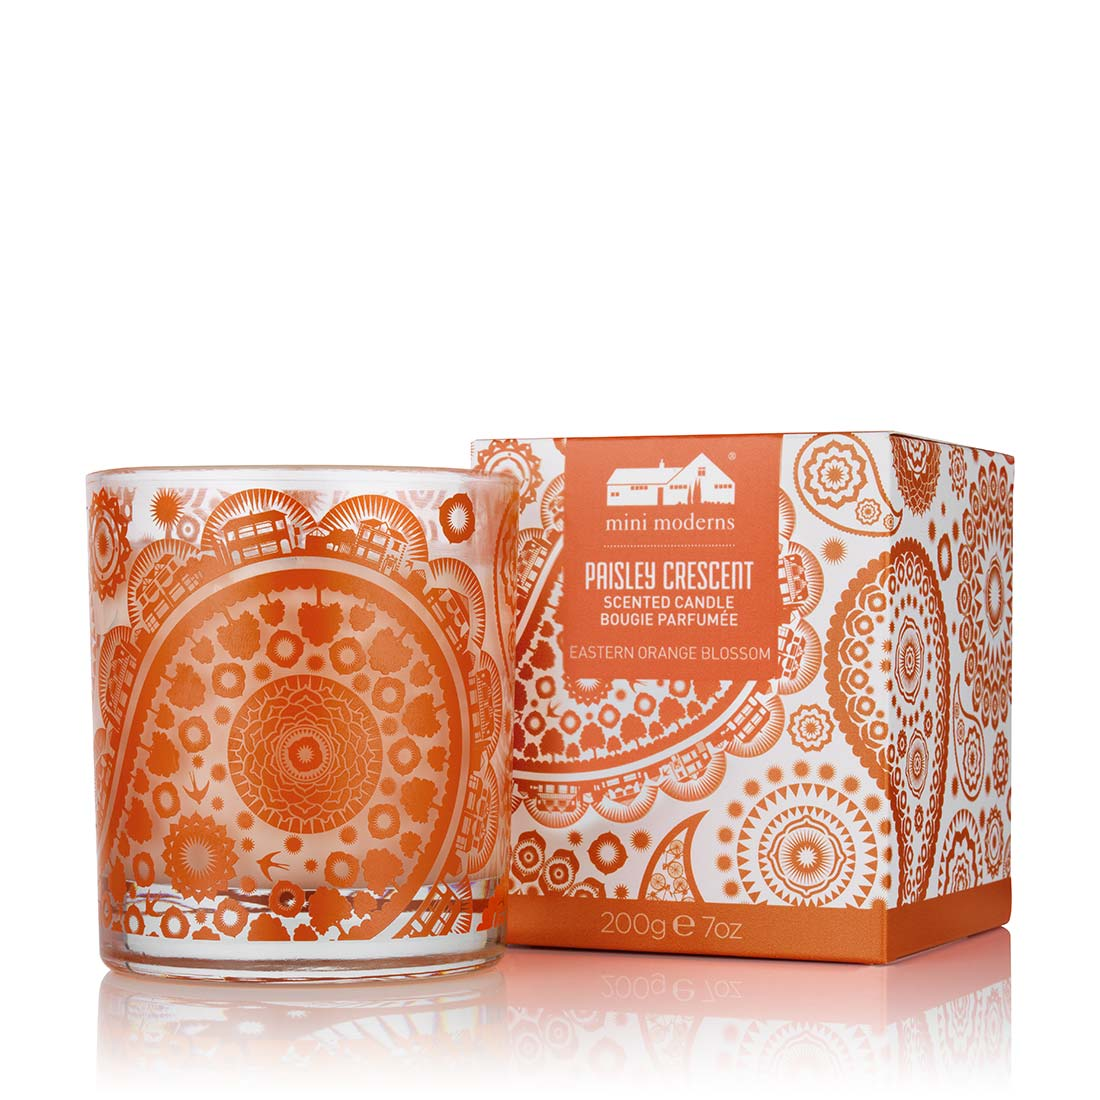 Paisley Crescent Candle